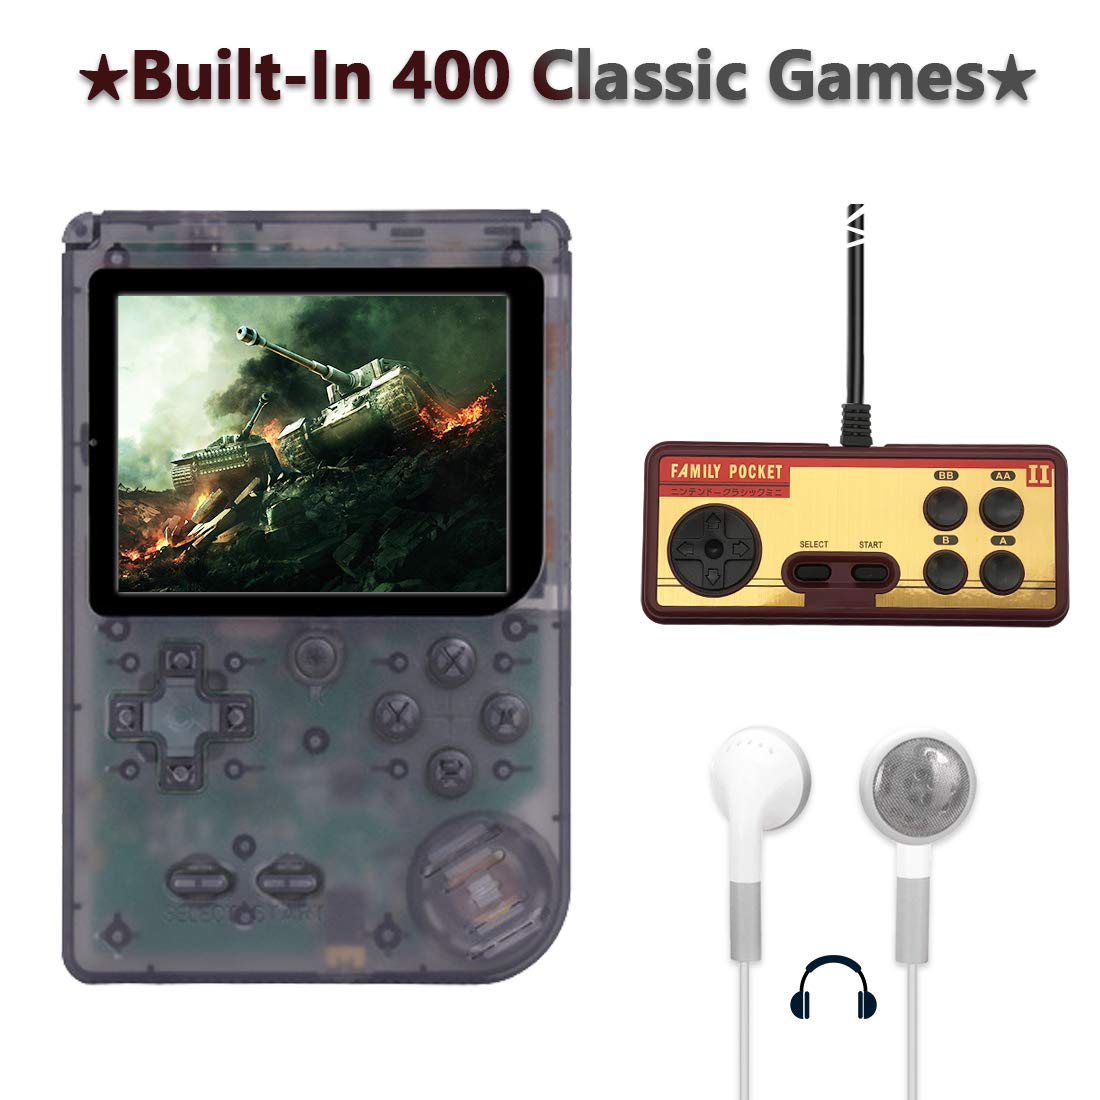 AKTOUGST Handheld Game Console, Retro Game Console 400 Classic Game FC System Video 3 Inch with Headphone Portable Mini Extra Controller Support TV 2 Player,Gift for Child Adult, (Transparent Black) by AKTOUGST (Image #1)